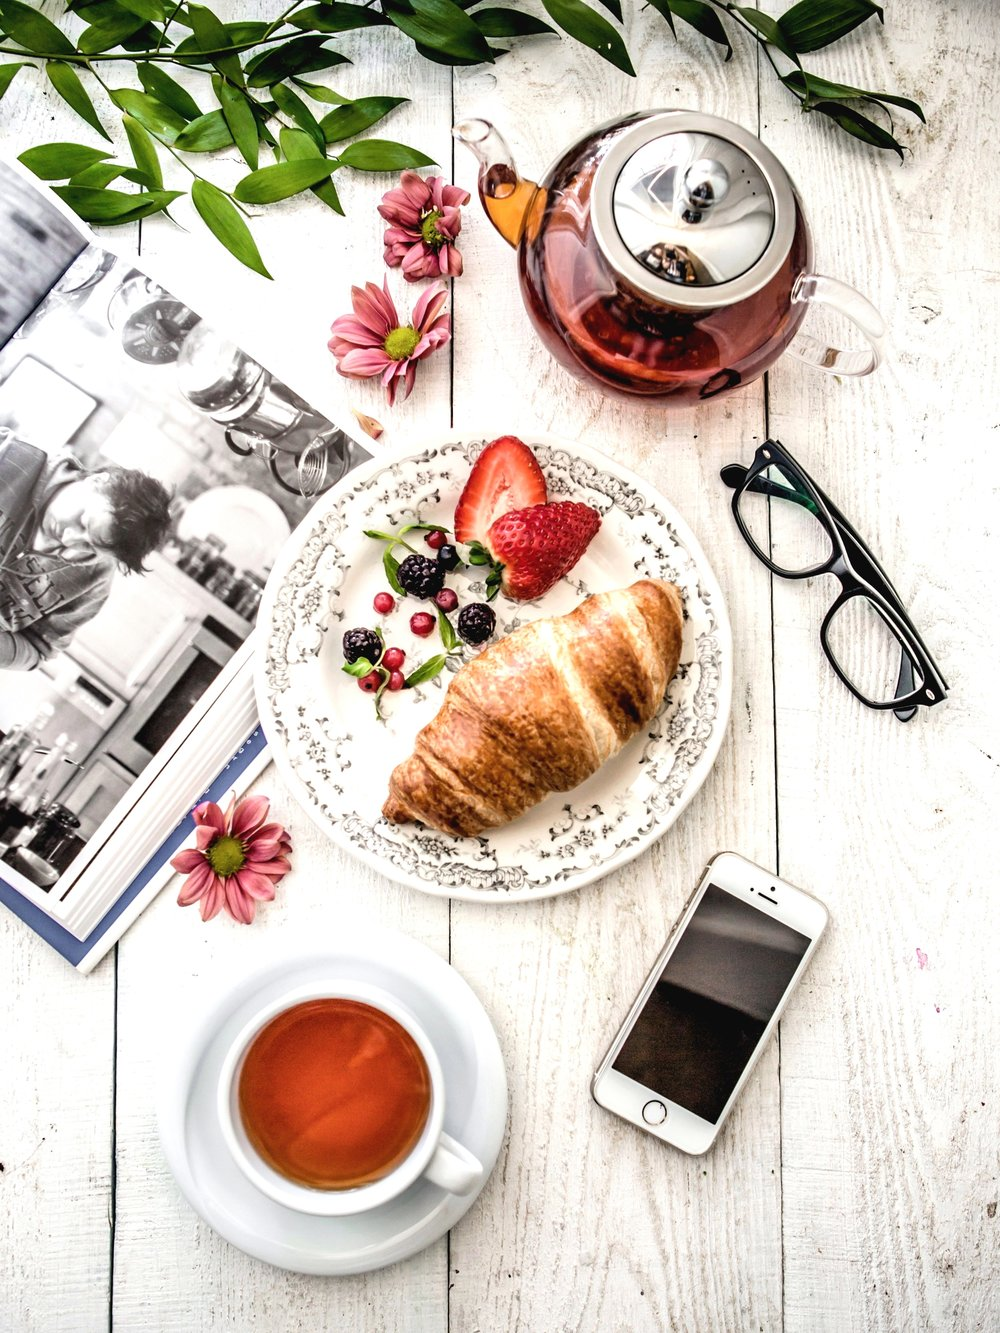 foodiesfeed.com_relaxing-with-book-tea-croissant-and-berries.jpg